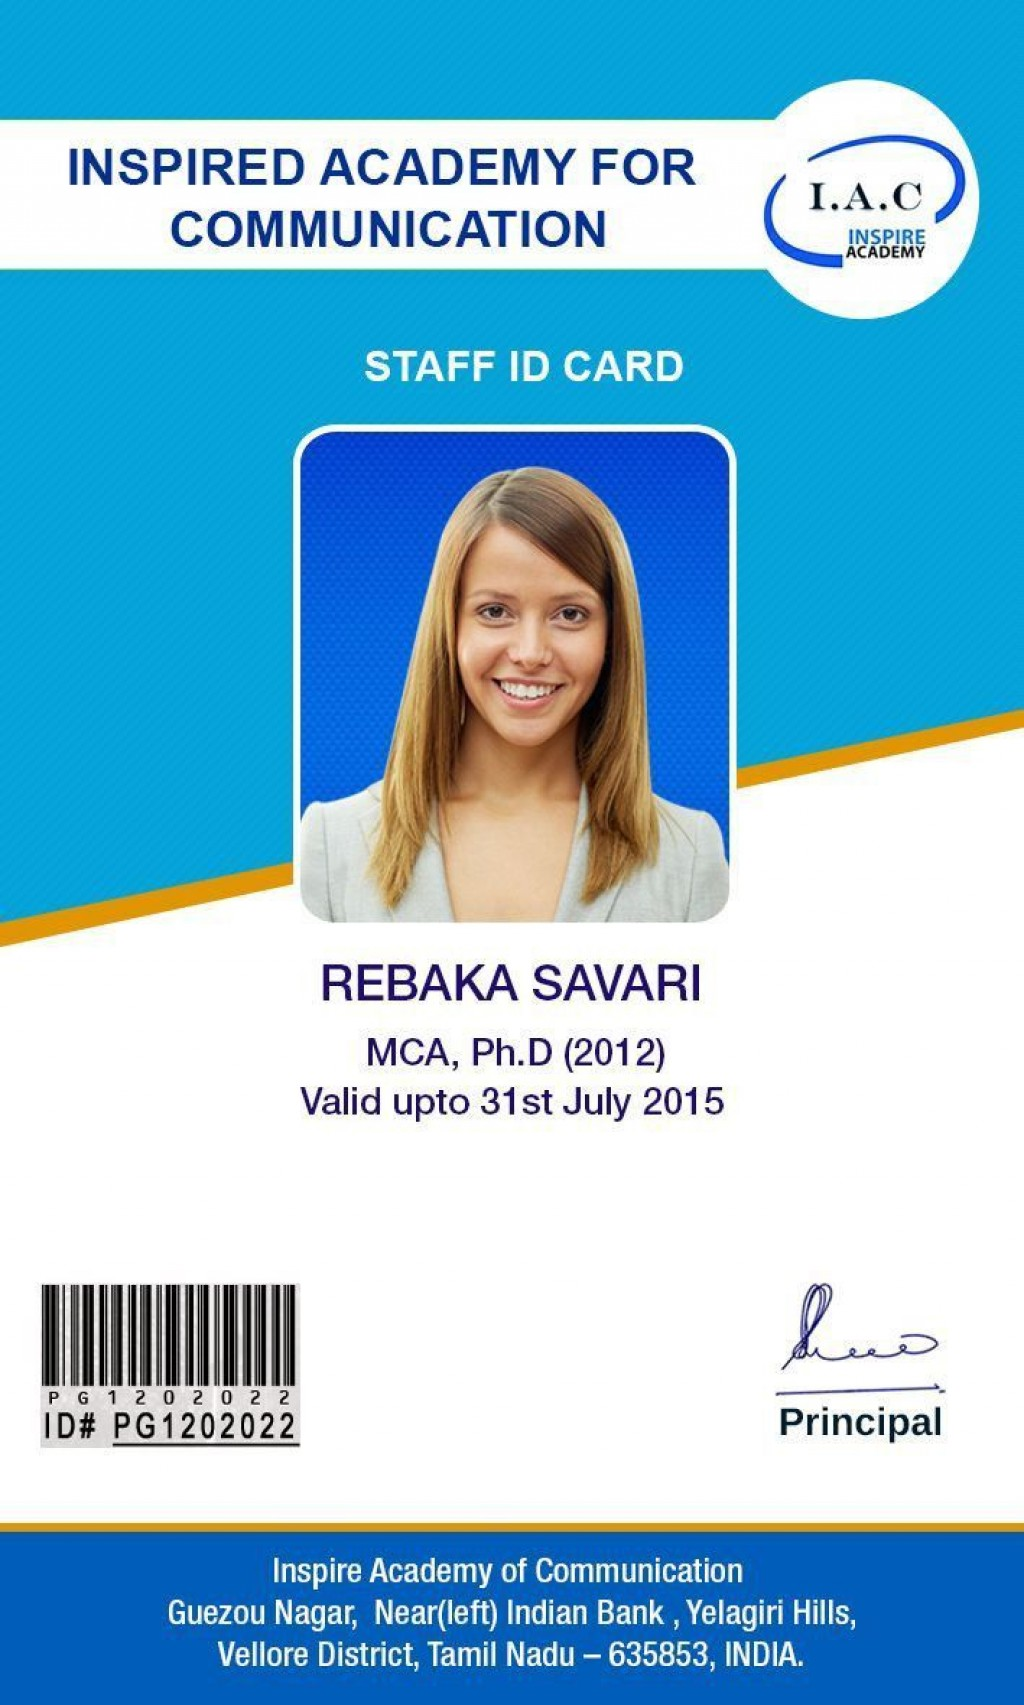 004 Archaicawful Student Id Card Template Picture  Free Psd Download Word SchoolLarge